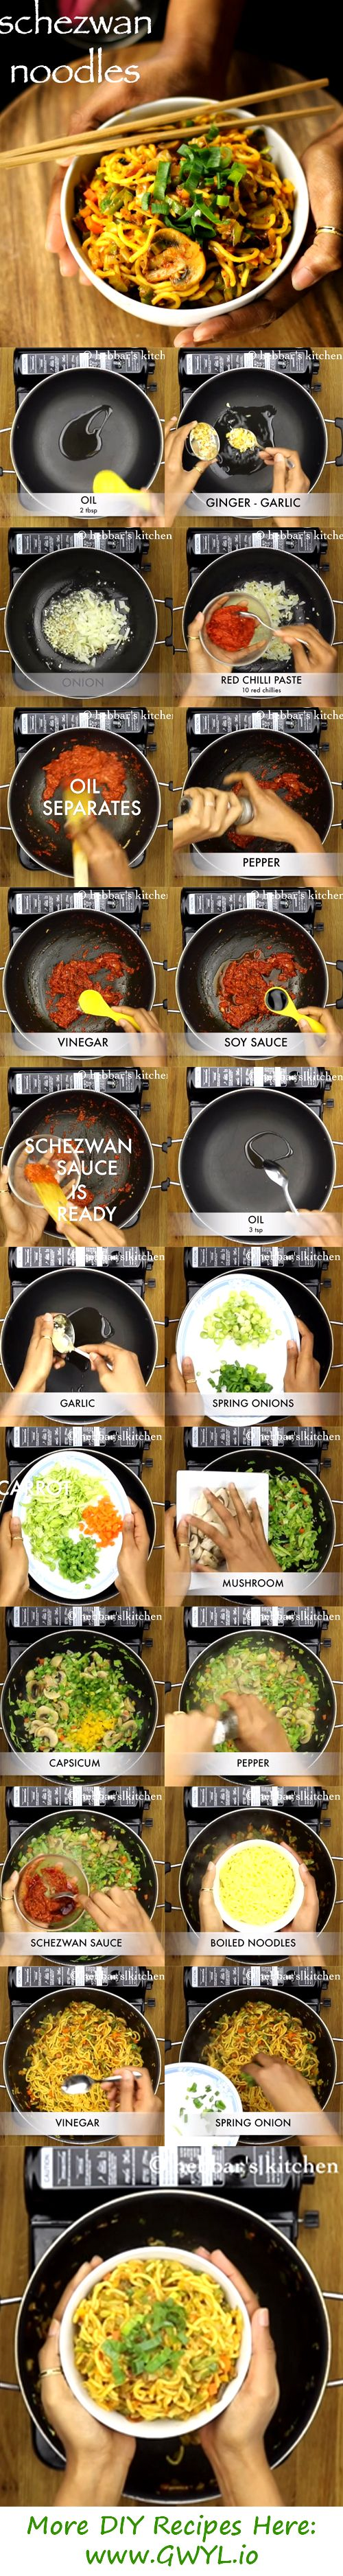 Schezuan Noodles is an authentic Chinese preparation of Hakka noodles with sautéed veggies and this Schezuan sauce. Prepared with veggies typically used in Oriental cooking, this recipe will be one of your favorites. See video and written instructions here==> | Easy-To-Cook Schezwan Noodles Recipe | http://gwyl.io/easy-cook-schezwan-noodles-recipe/